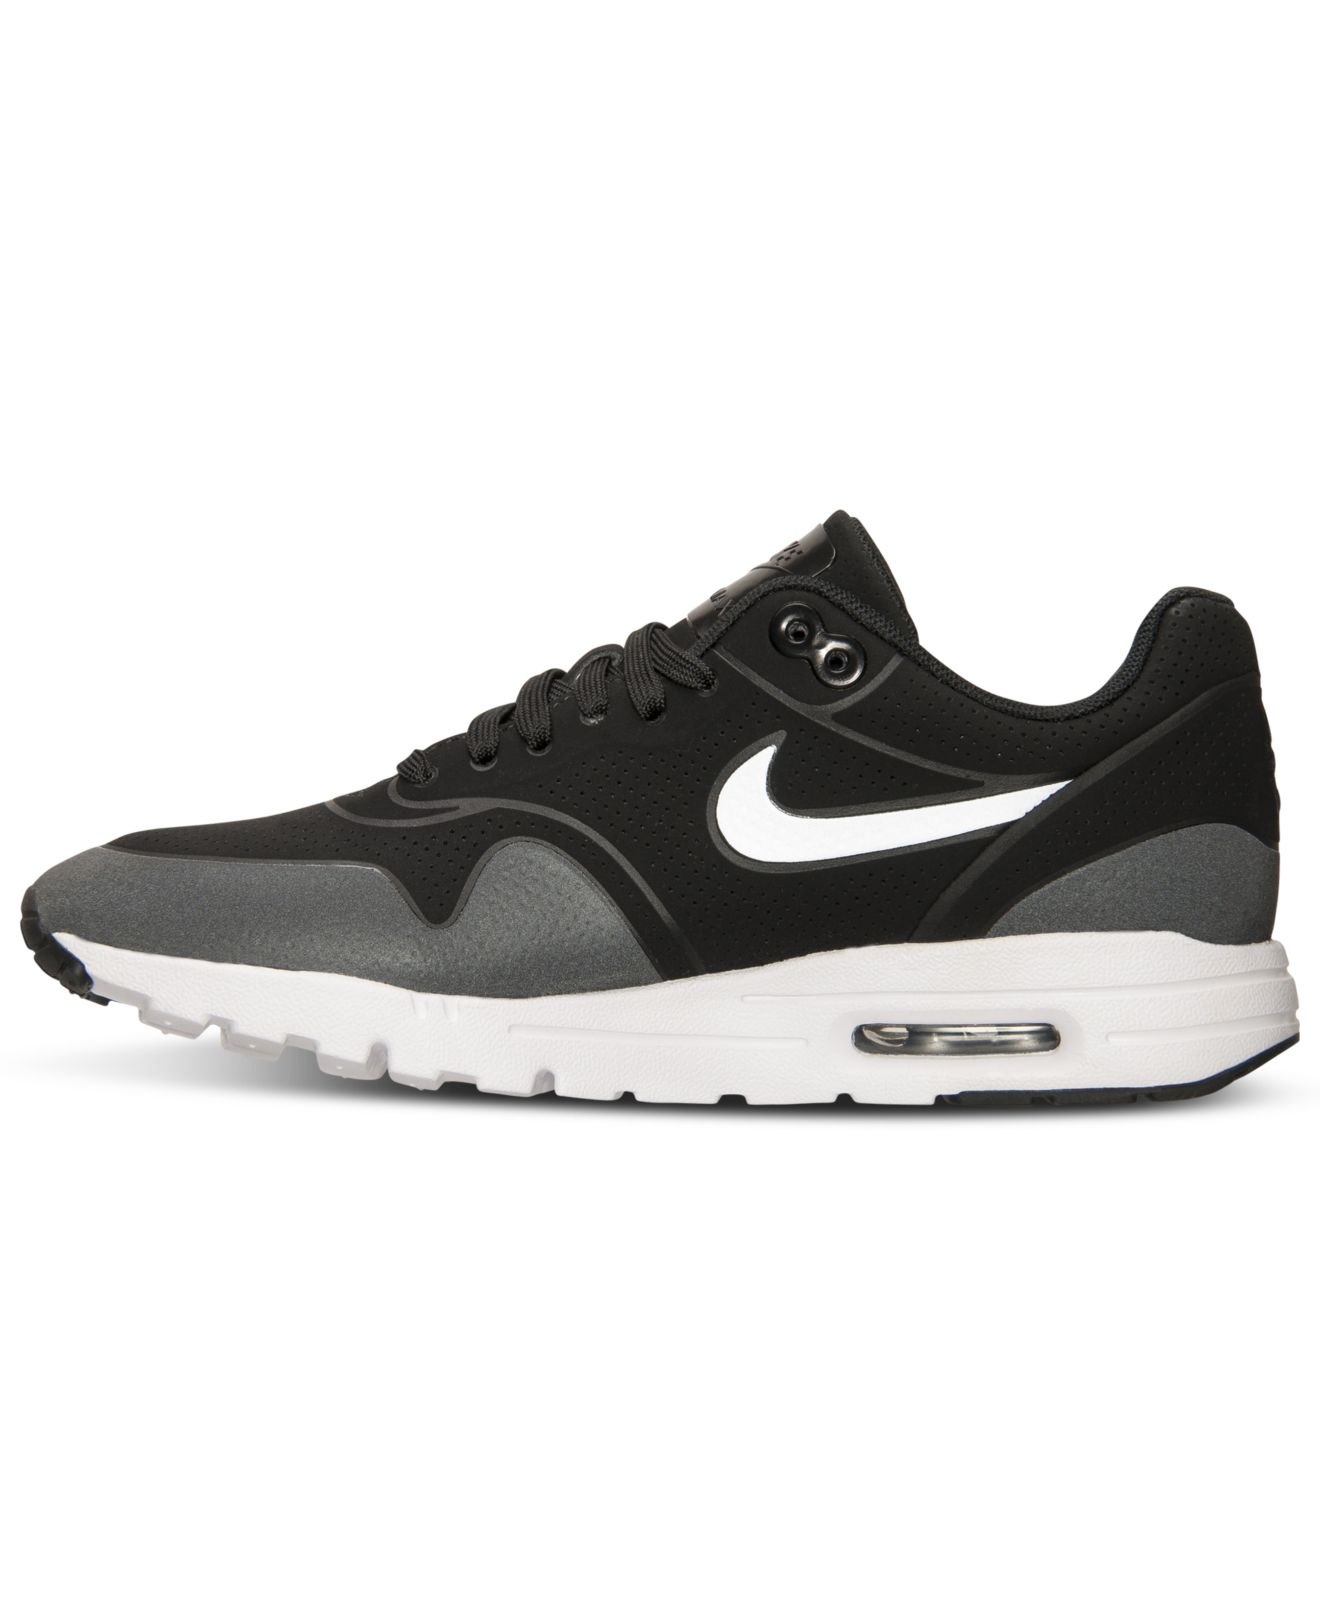 finest selection 8d45c df2e8 ... sweden lyst nike womens air max 1 ultra moire running sneakers from  5b39f 19353